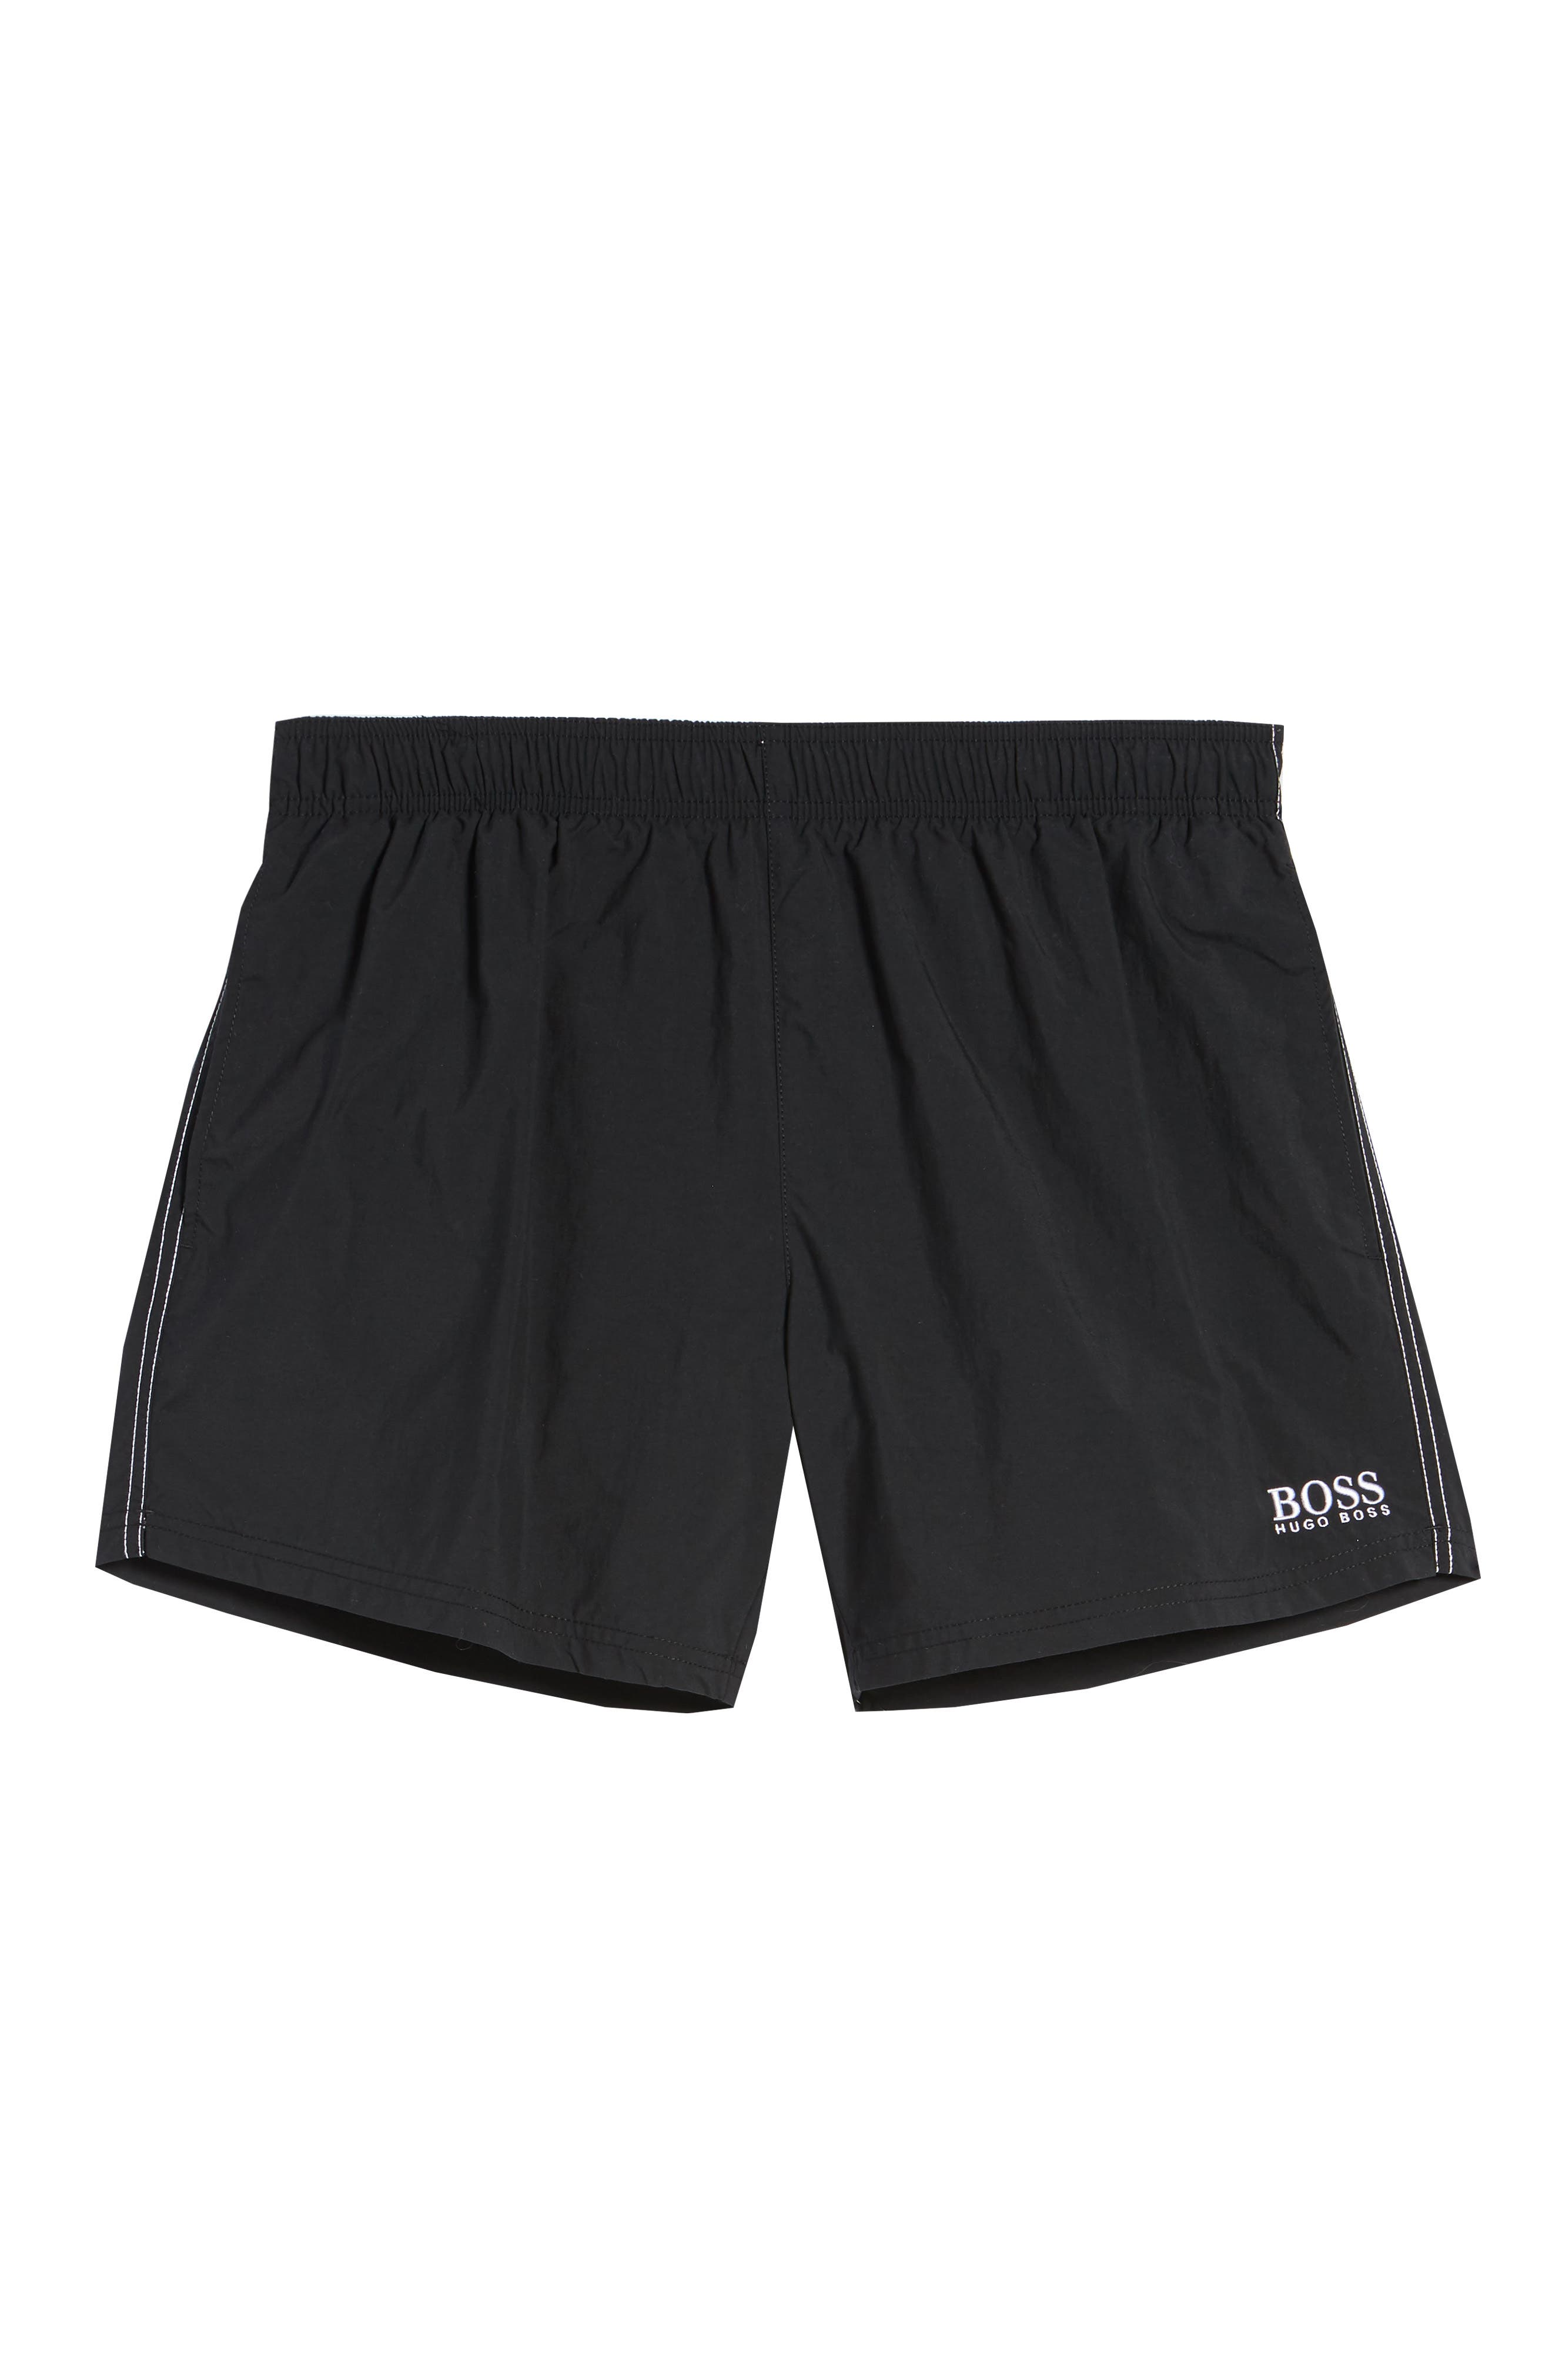 Perch Swim Trunks,                             Alternate thumbnail 6, color,                             001